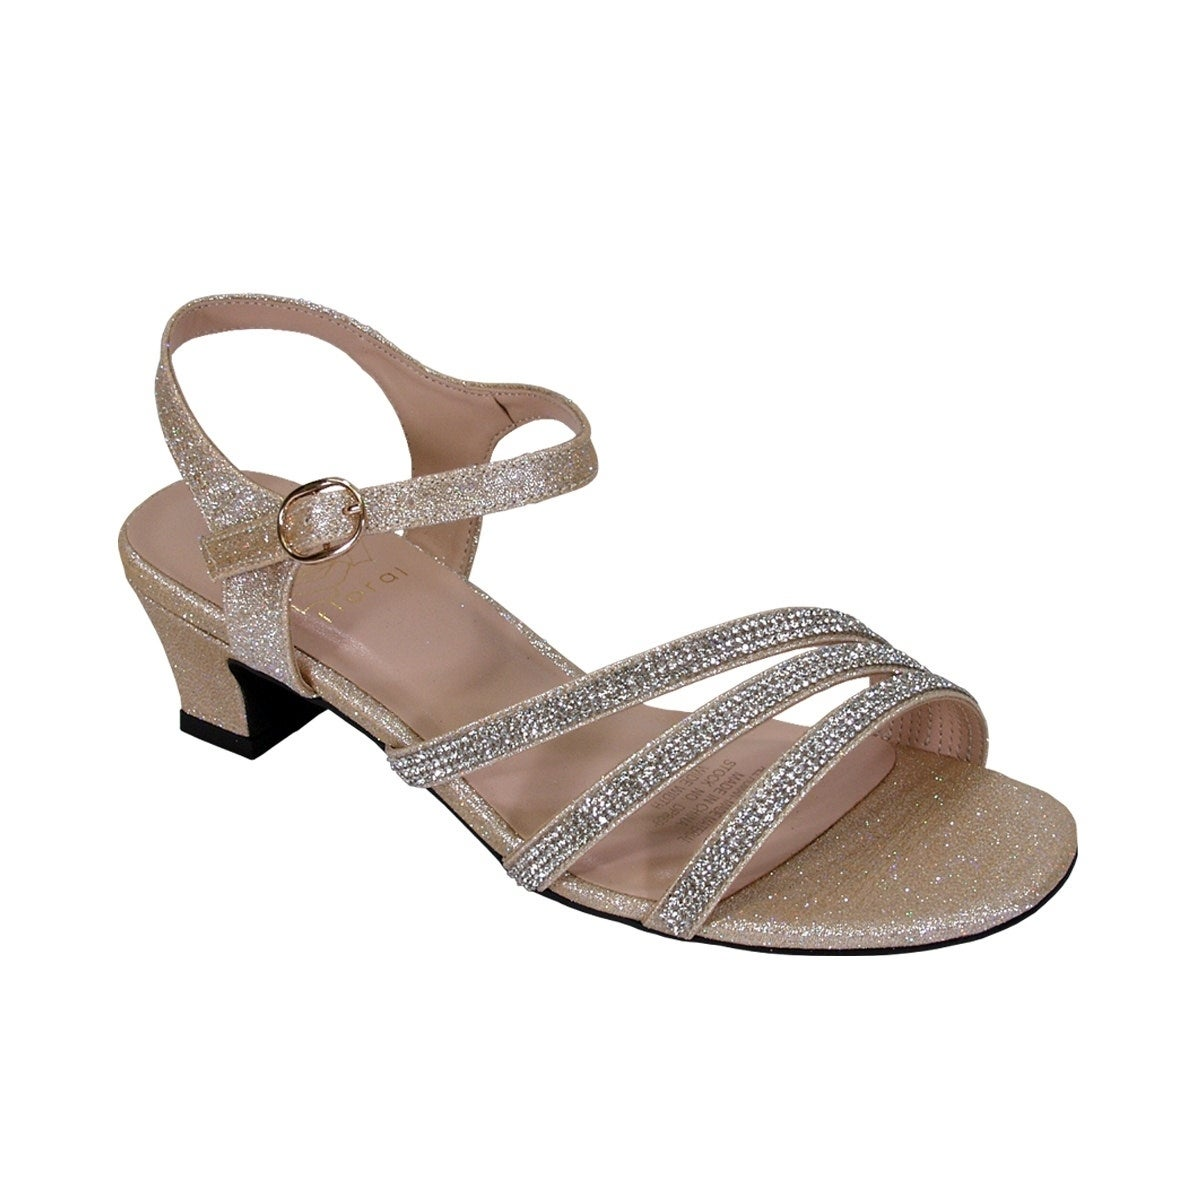 54df55e62cc2 Shop FLORAL Jenna Women Extra Wide Width Glittery Rhinestone Straps Sandals  - Free Shipping Today - Overstock - 20005084